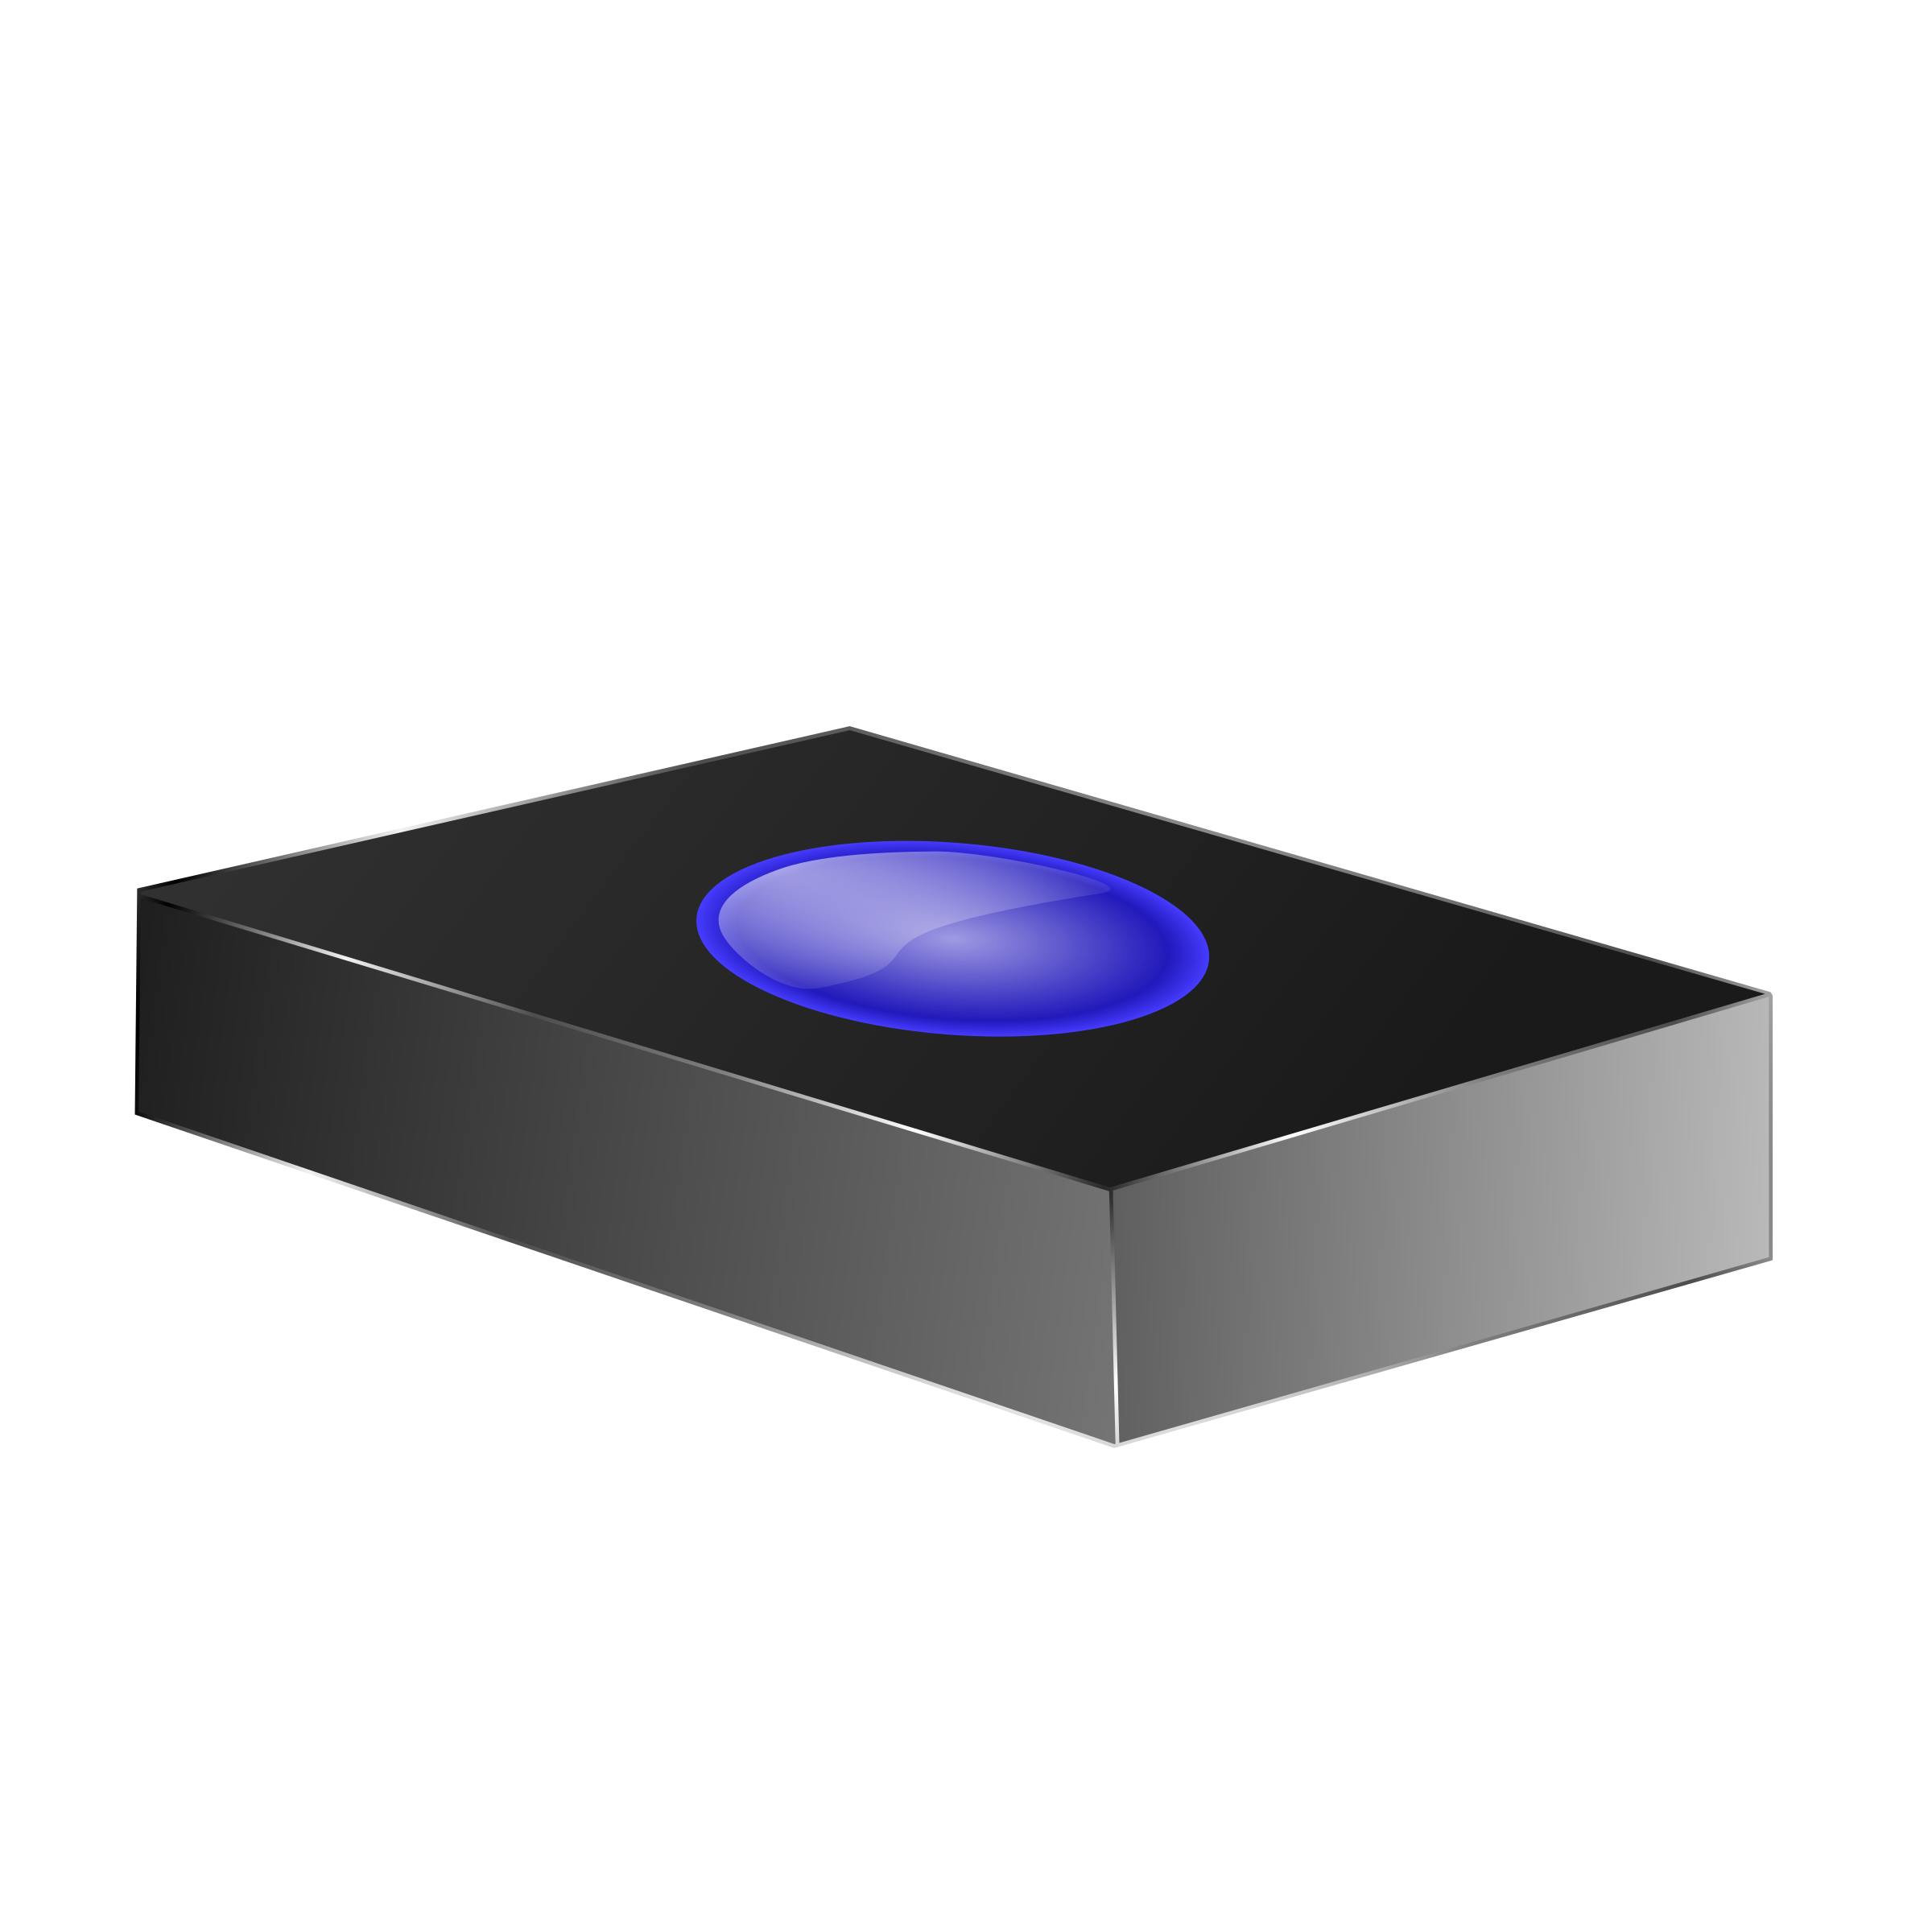 Fingerprint reader by jhnri4